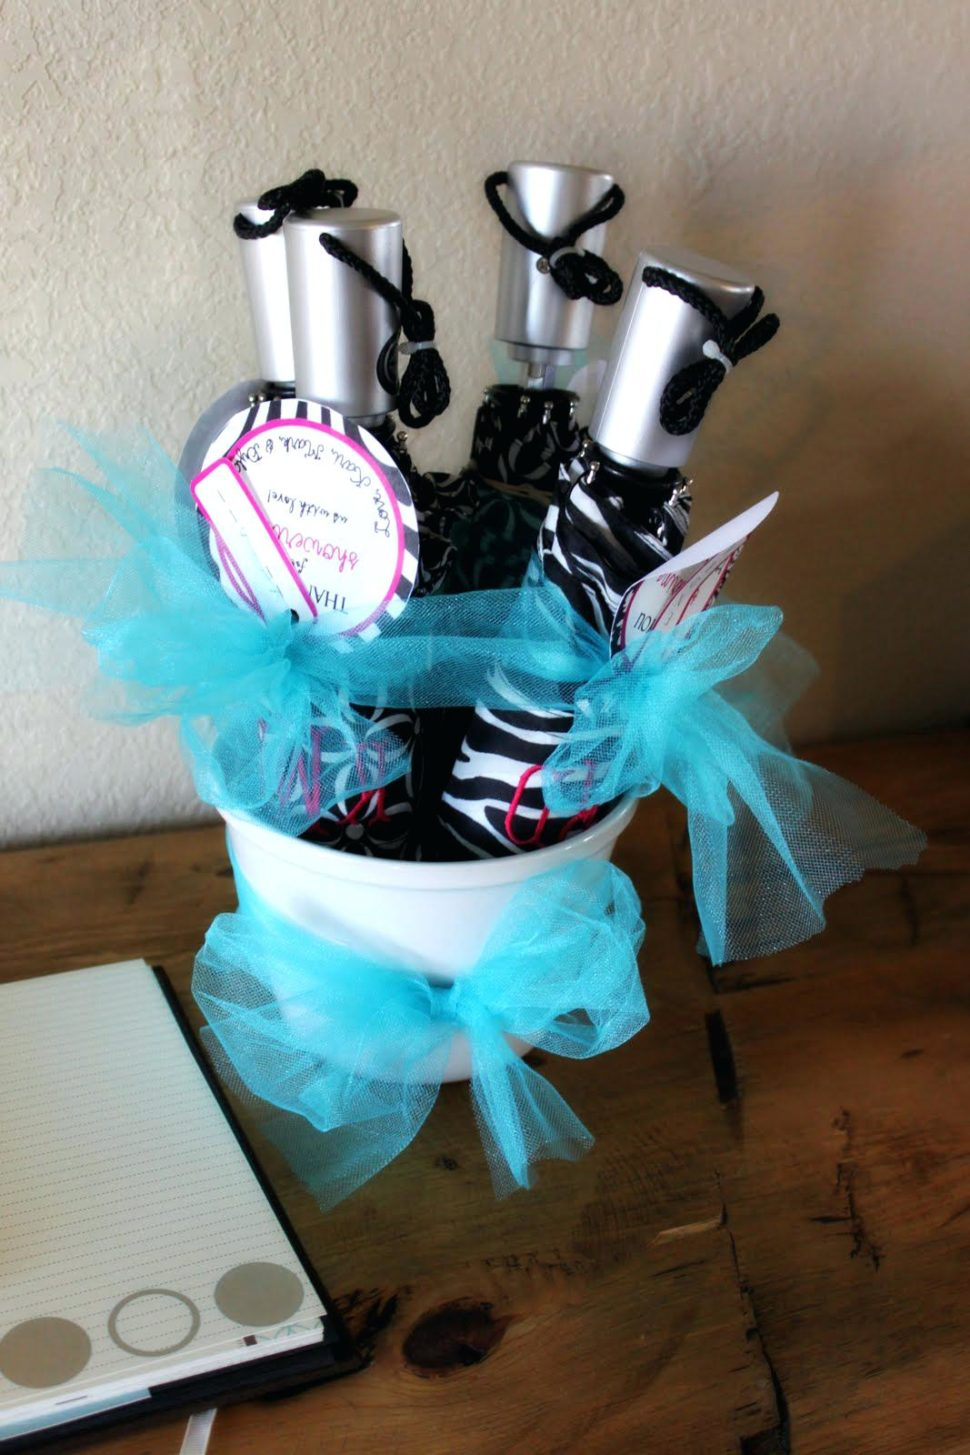 Medium Size of Baby Shower:64+ Splendiferous Baby Shower Hostess Gifts Photo Inspirations Baby Shower Hostess Gifts Ideas Dreaded Grandma Baby Shower Gifts Grandmother Gift The Rhoads Family Baby Shower Hostess Gifts Etiquette Wine Cheap For Grandmas Ideas Multiple Hostesses Under